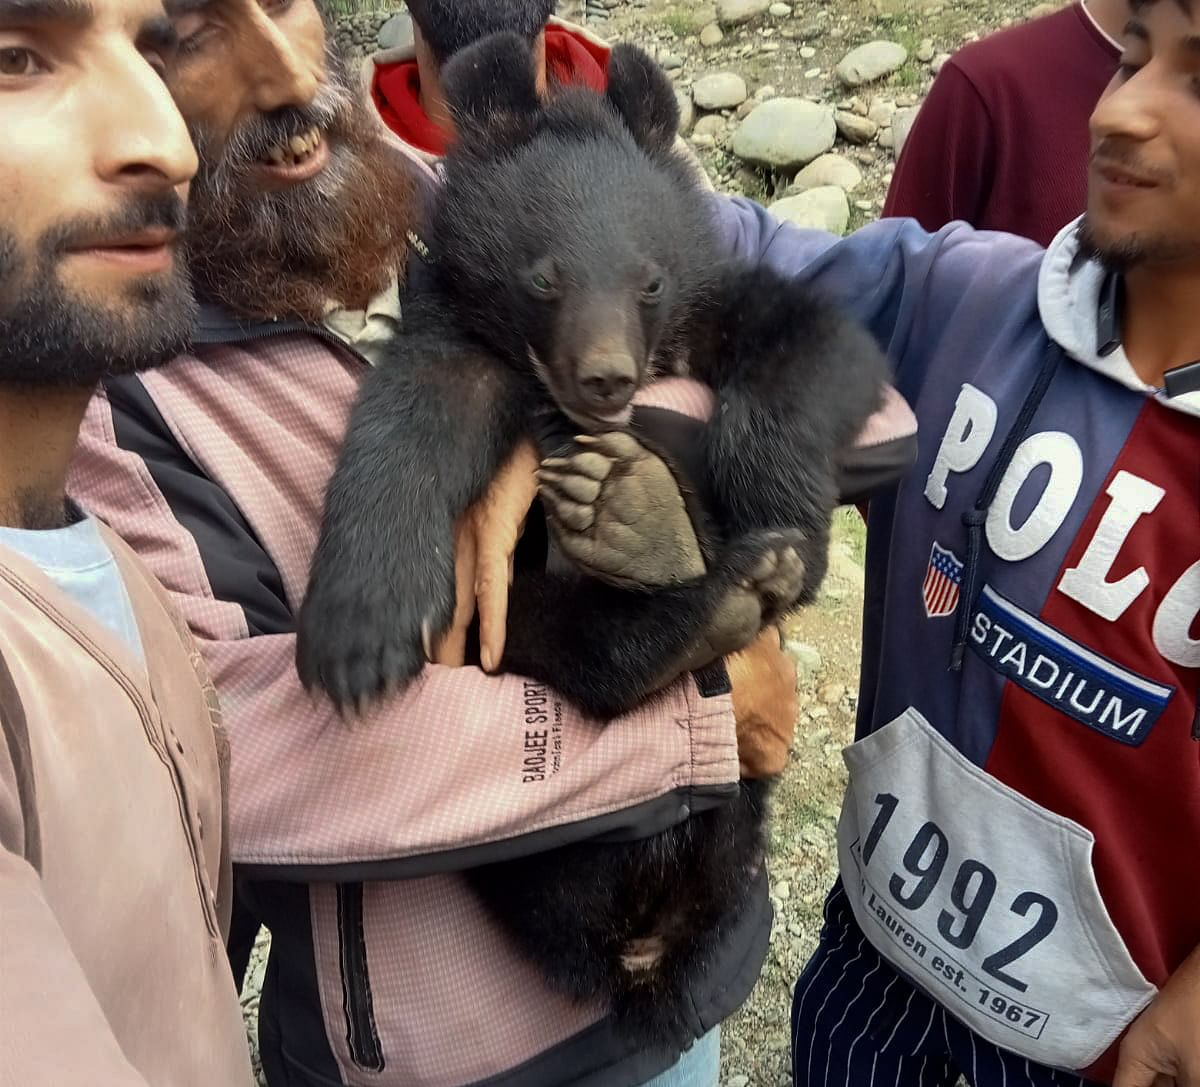 Locals carry the cub who strayed into northern Kashmir's Baramulla District on July 13, 2021.